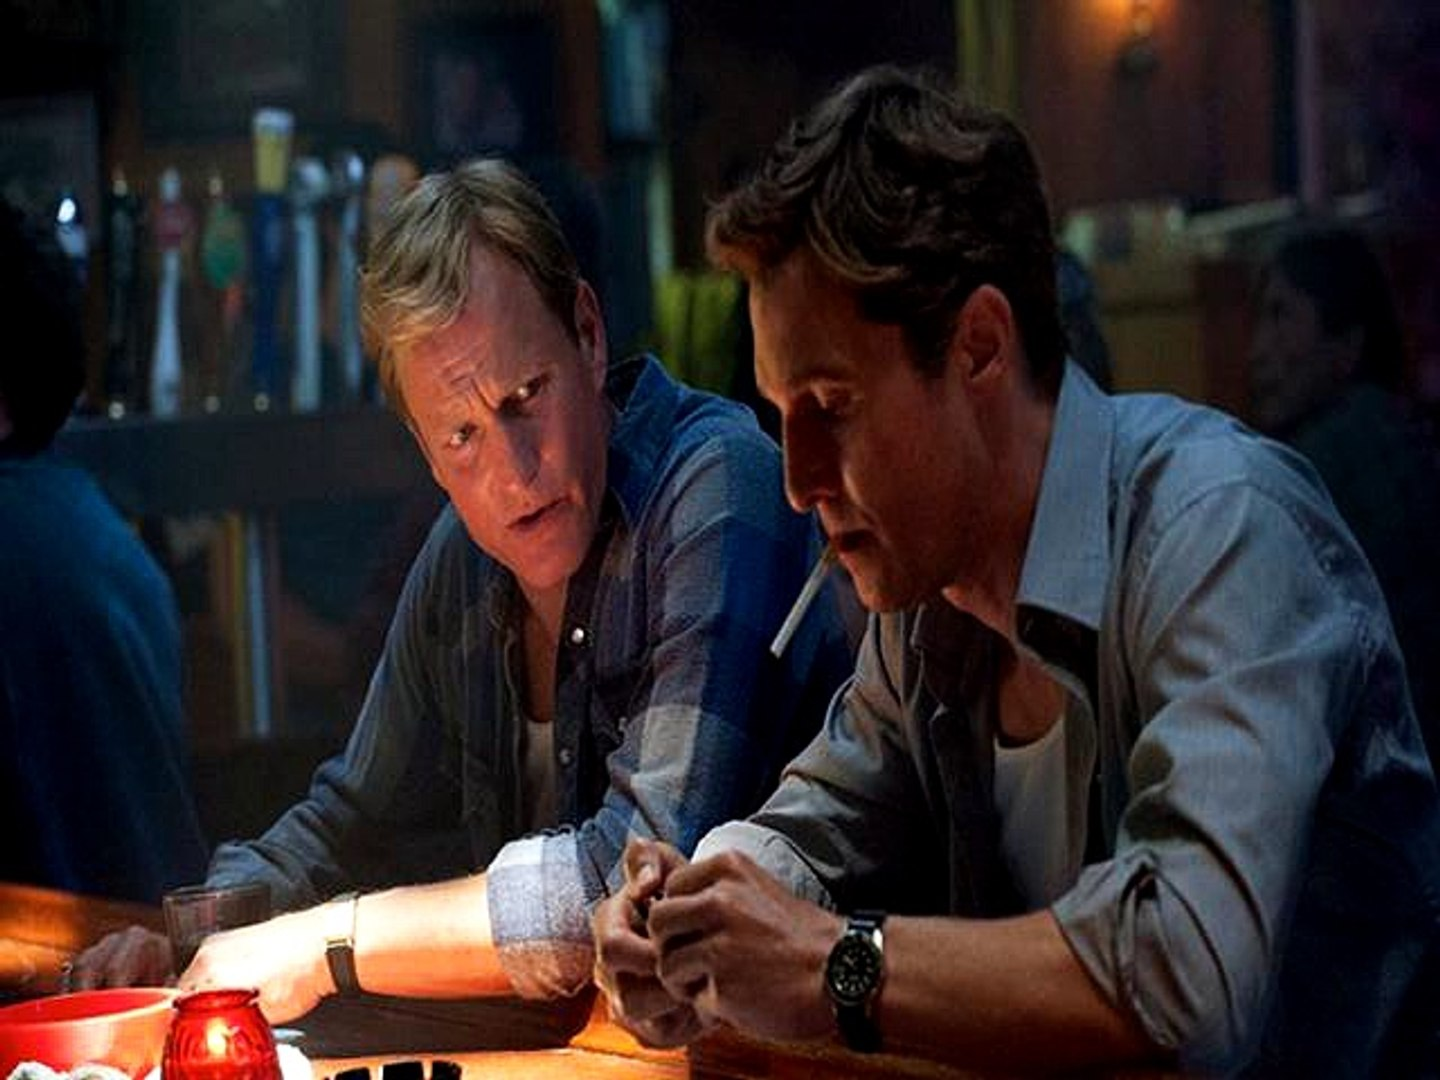 Watch True Detective Ses 1 Eps 4 Who Goes Here Hd Free Online Streaming Video Dailymotion